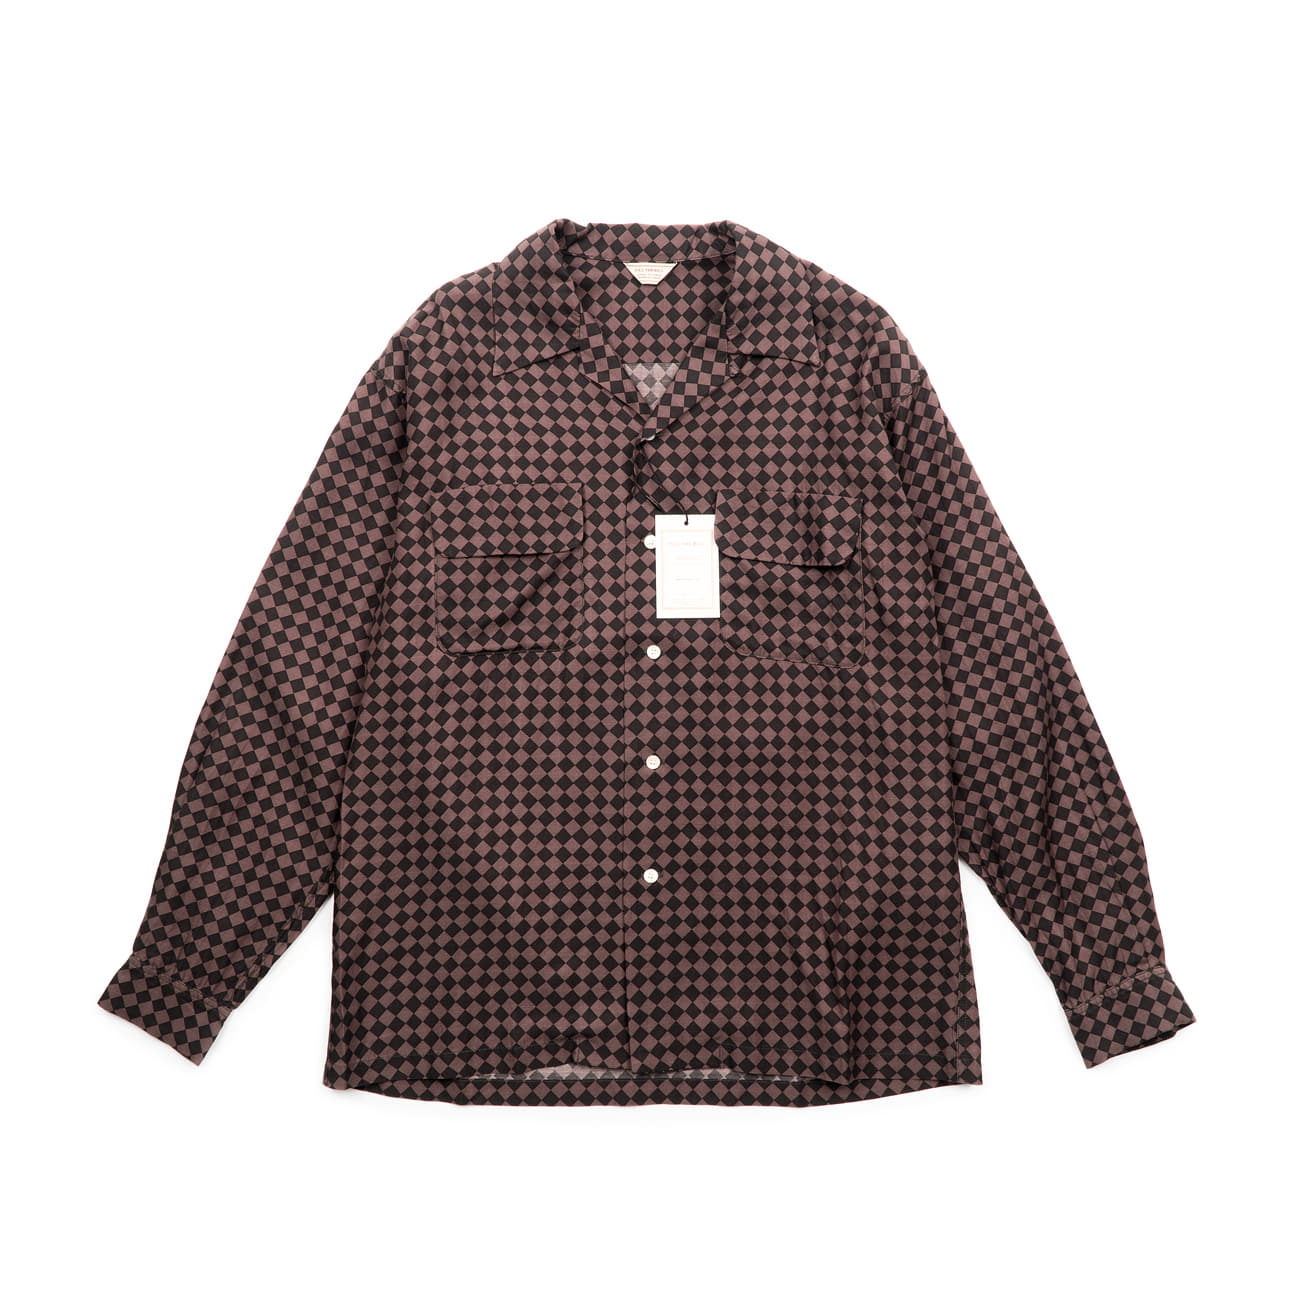 Harlequin Check Open Collar Shirt